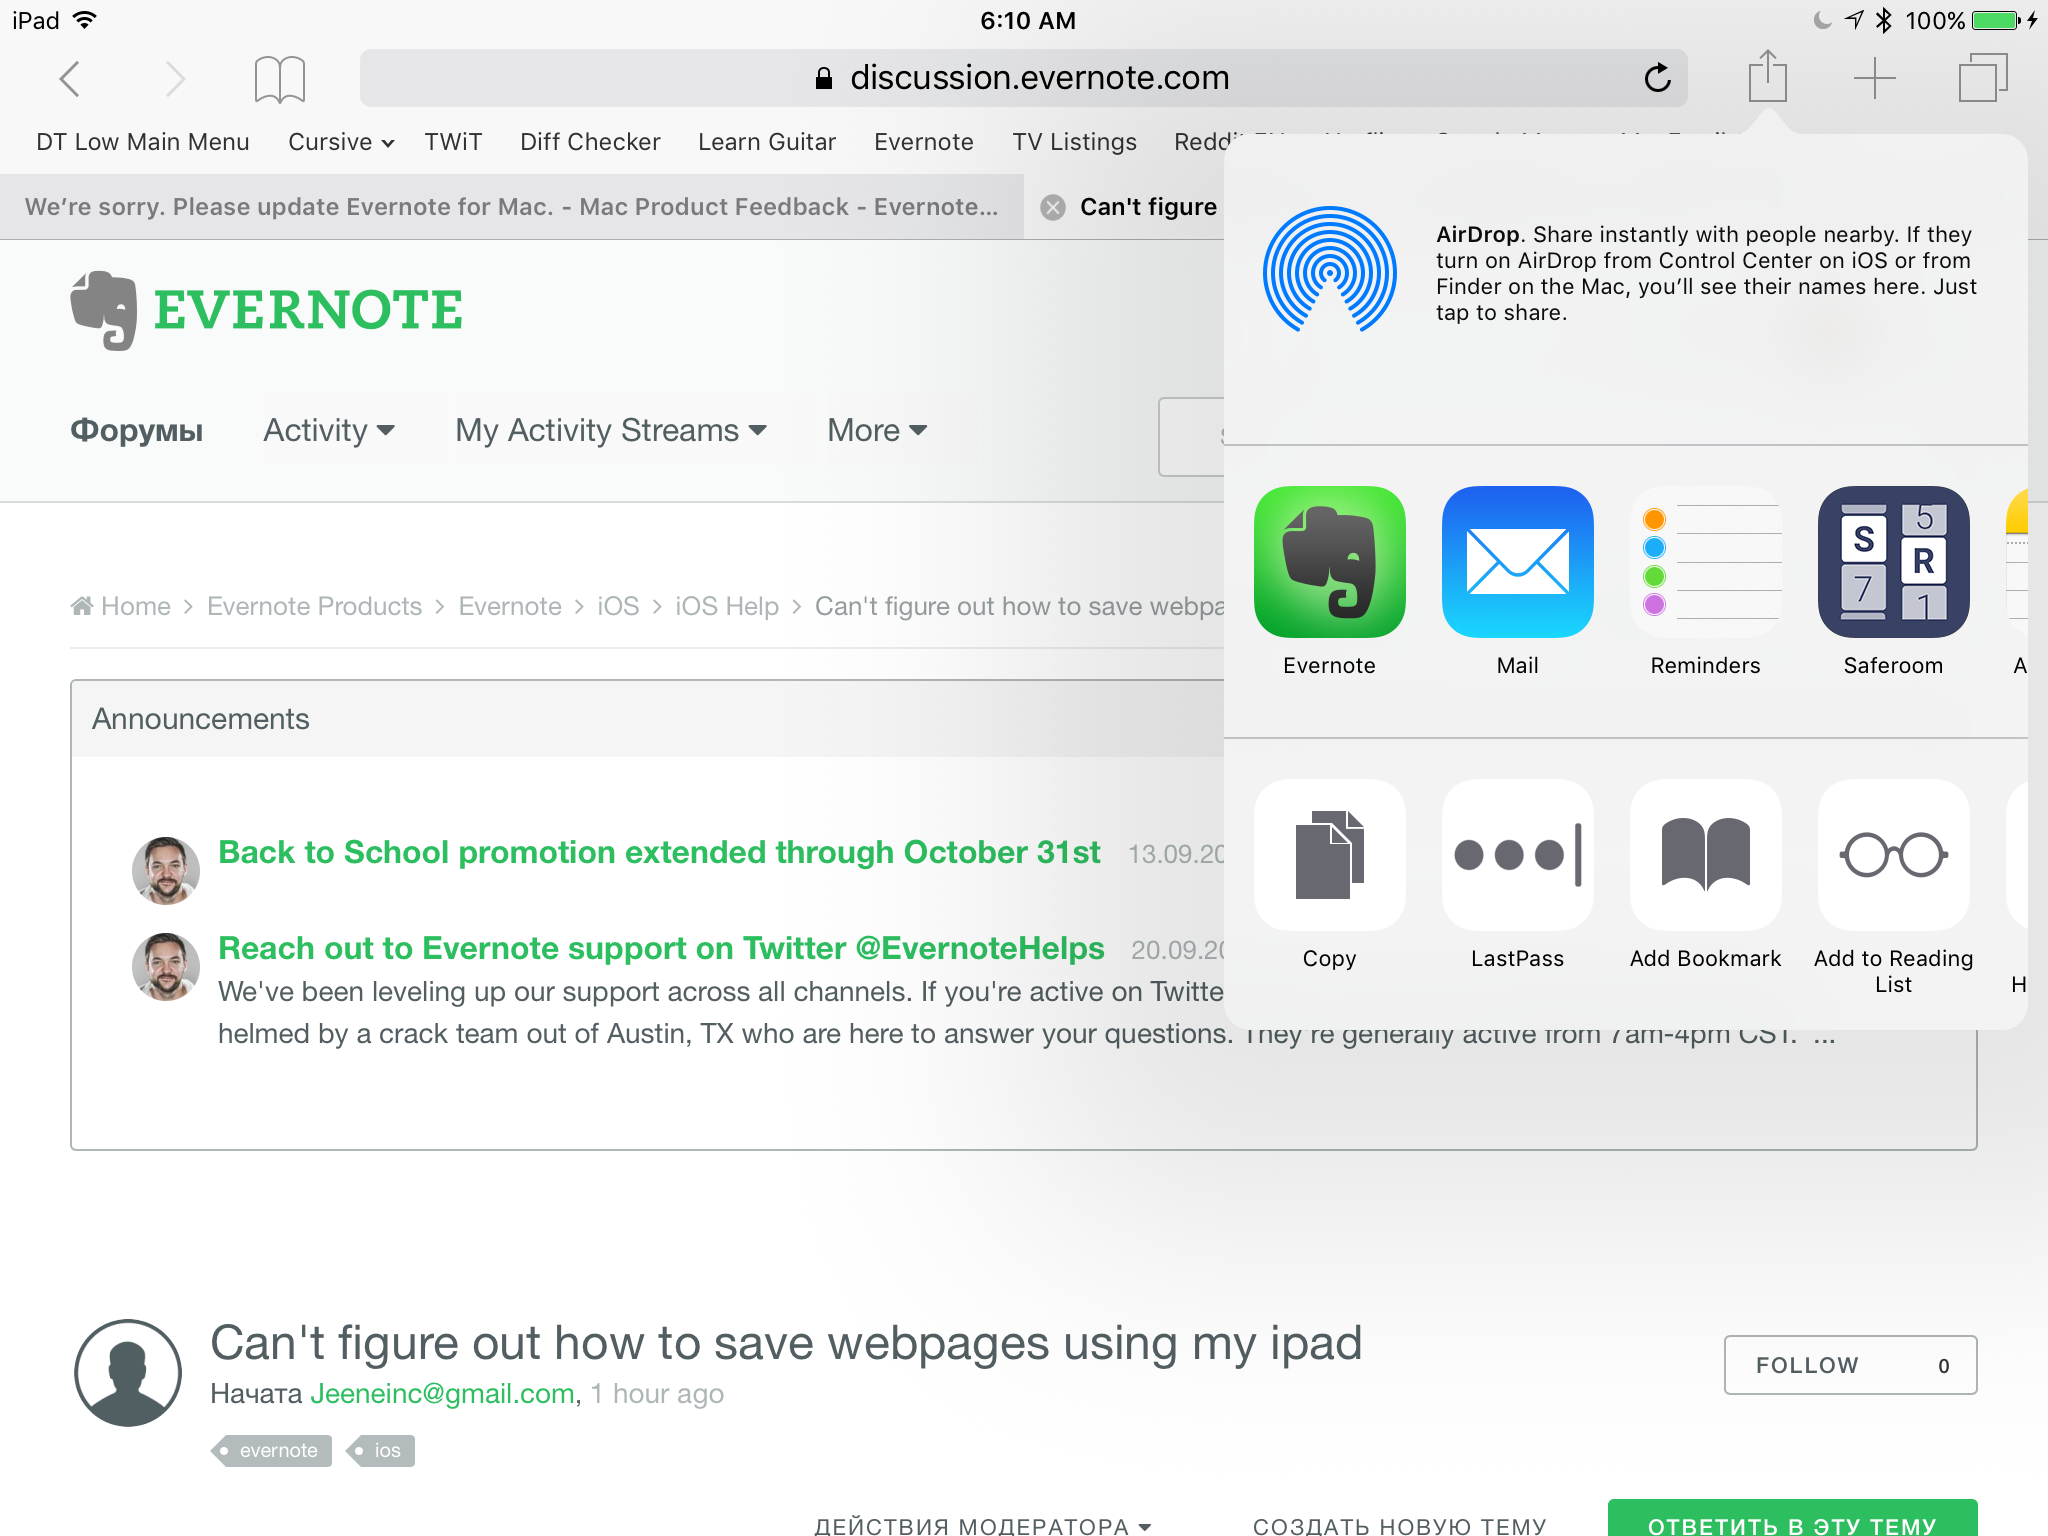 Can't figure out how to save webpages using my ipad - Evernote for